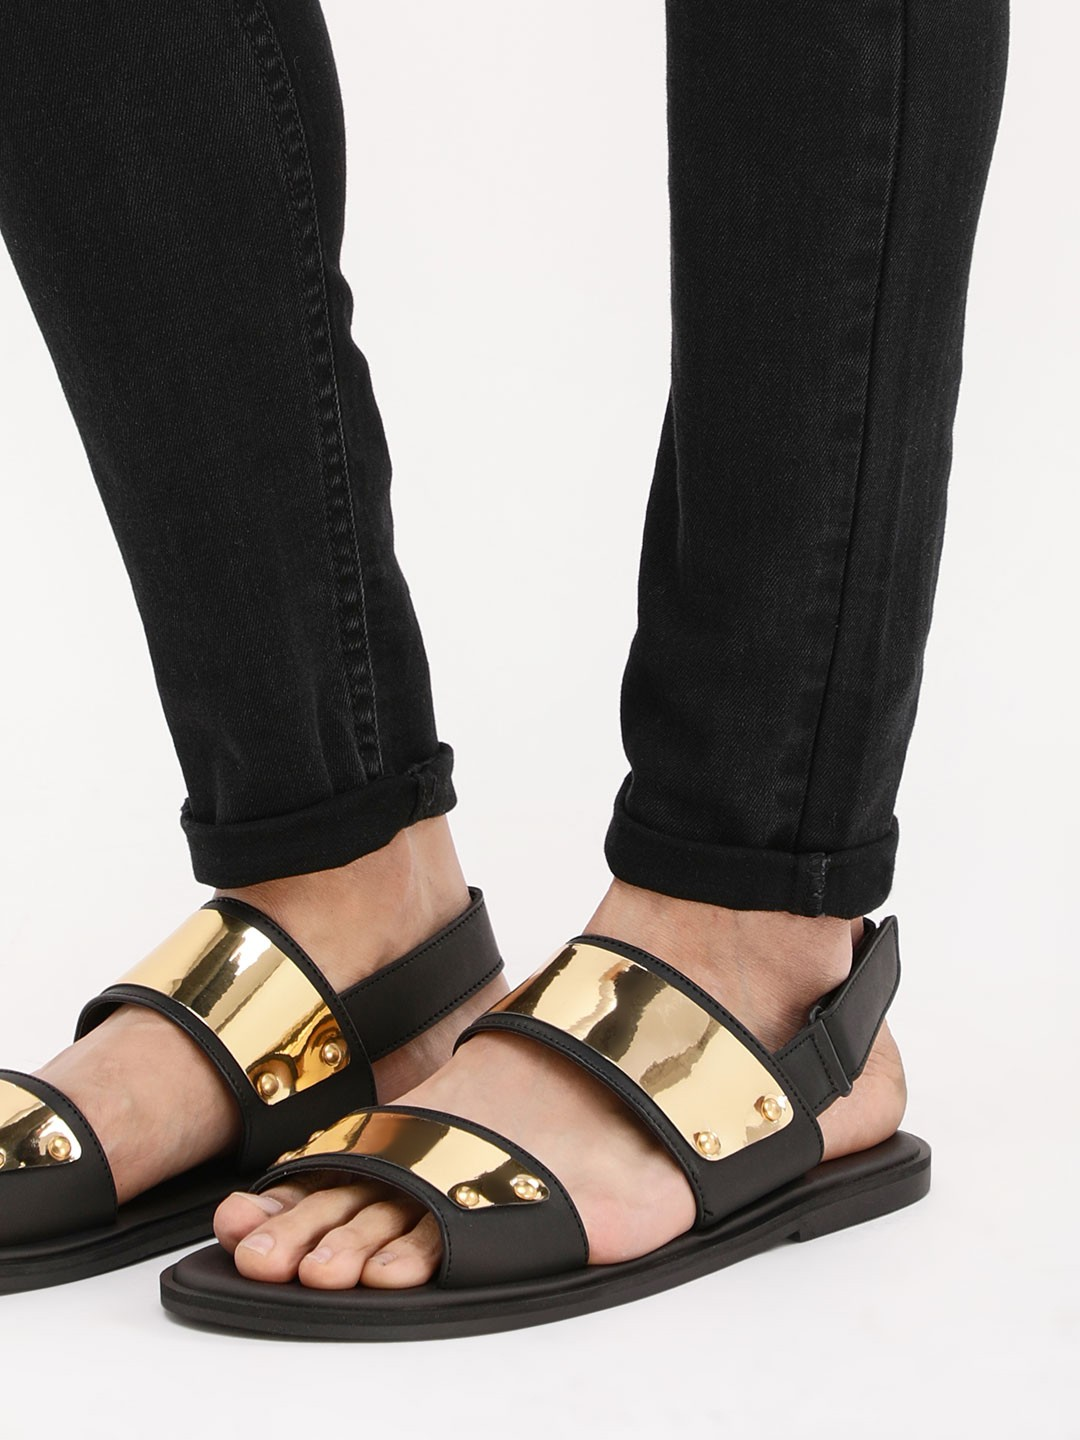 Griffin Black/gold Sandals With Metallic Detailing On Straps 1